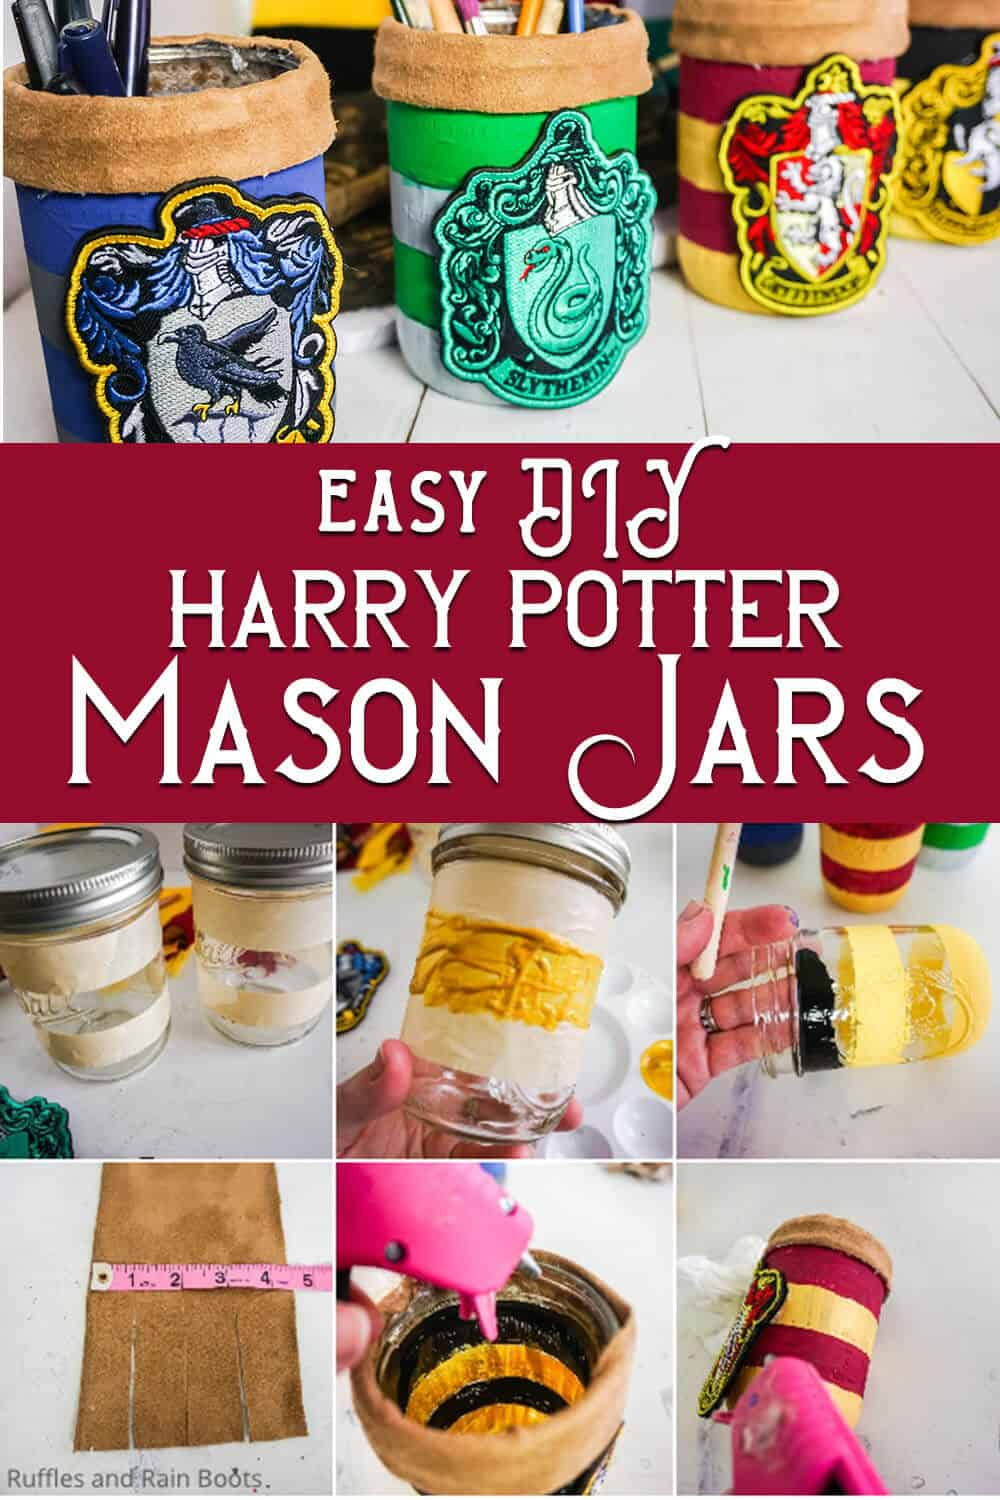 photo collage of easy hogwarts house colors jars with text which reads easy diy harry potter mason jars